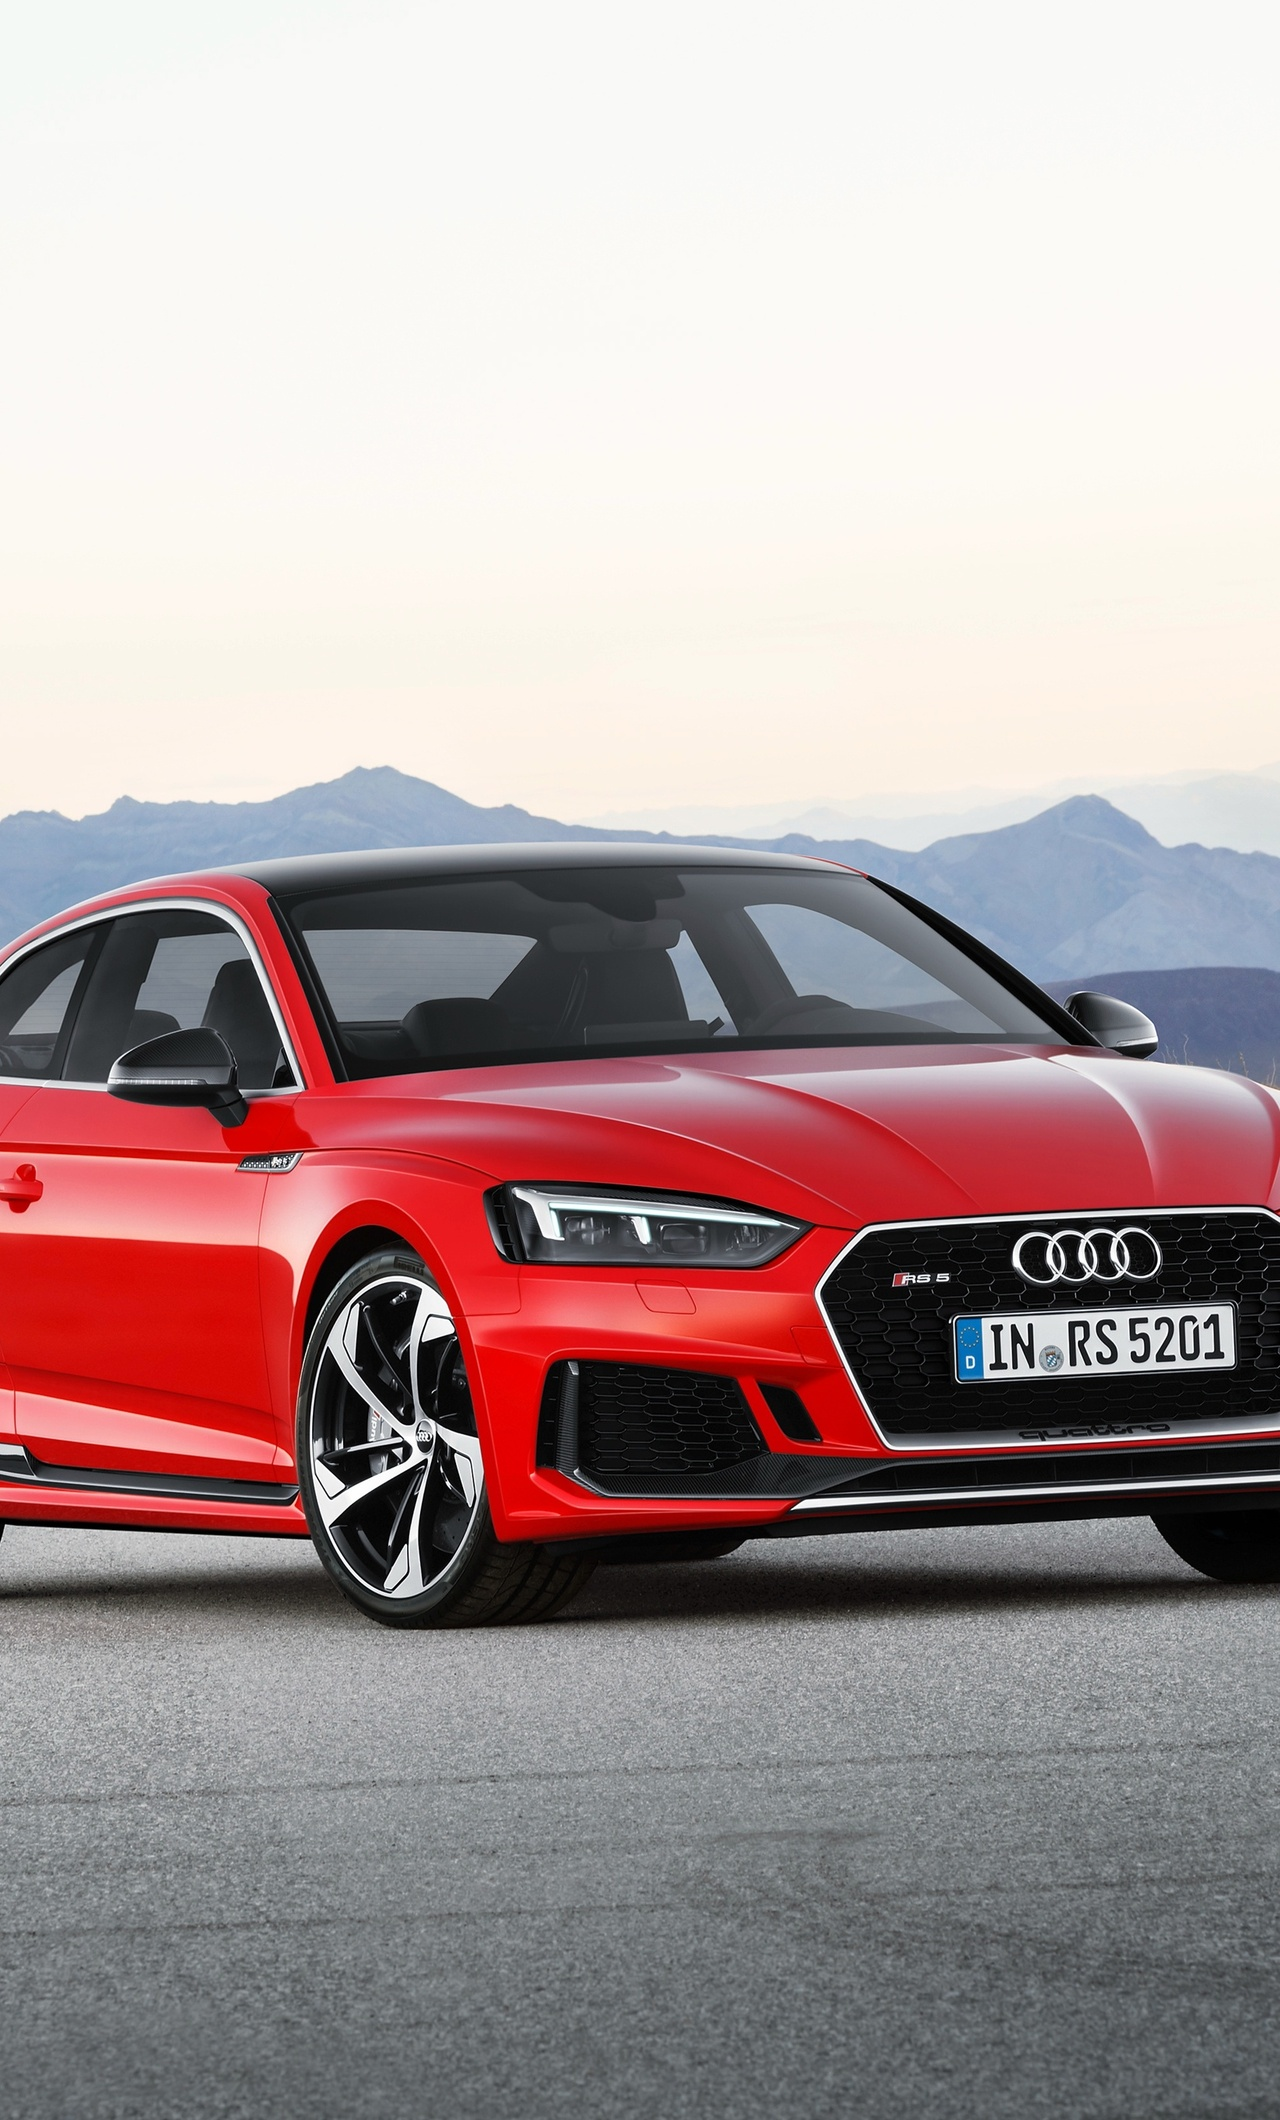 1280x2120 2018 Audi Rs5 Coupe Iphone 6 Hd 4k Wallpapers Images